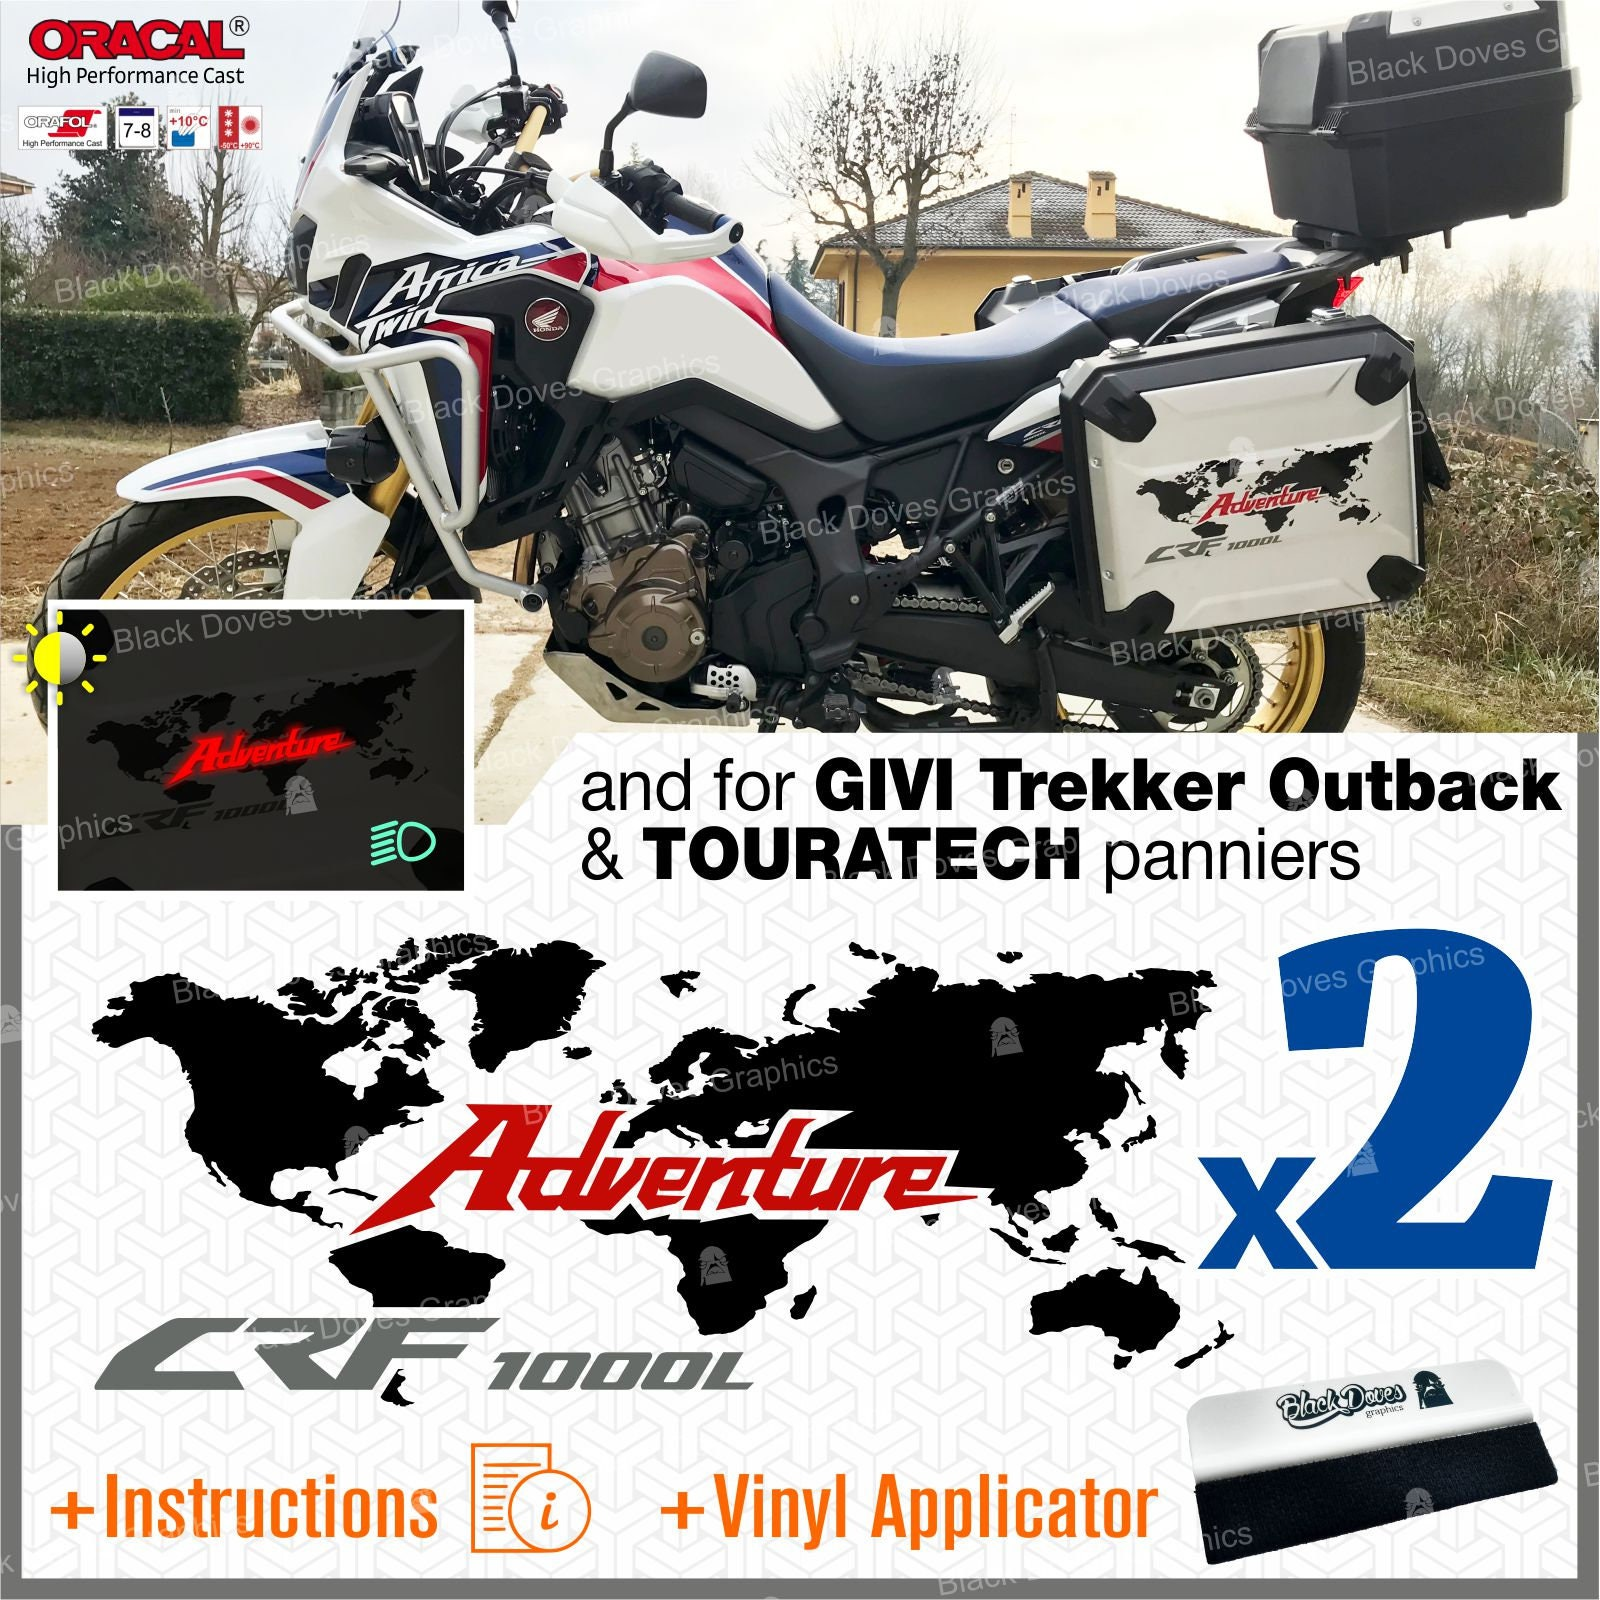 The Pixel Hut gs000037b Adventure Motorcycle Decal Kit World Adventure Map for Touratech Panniers Grey